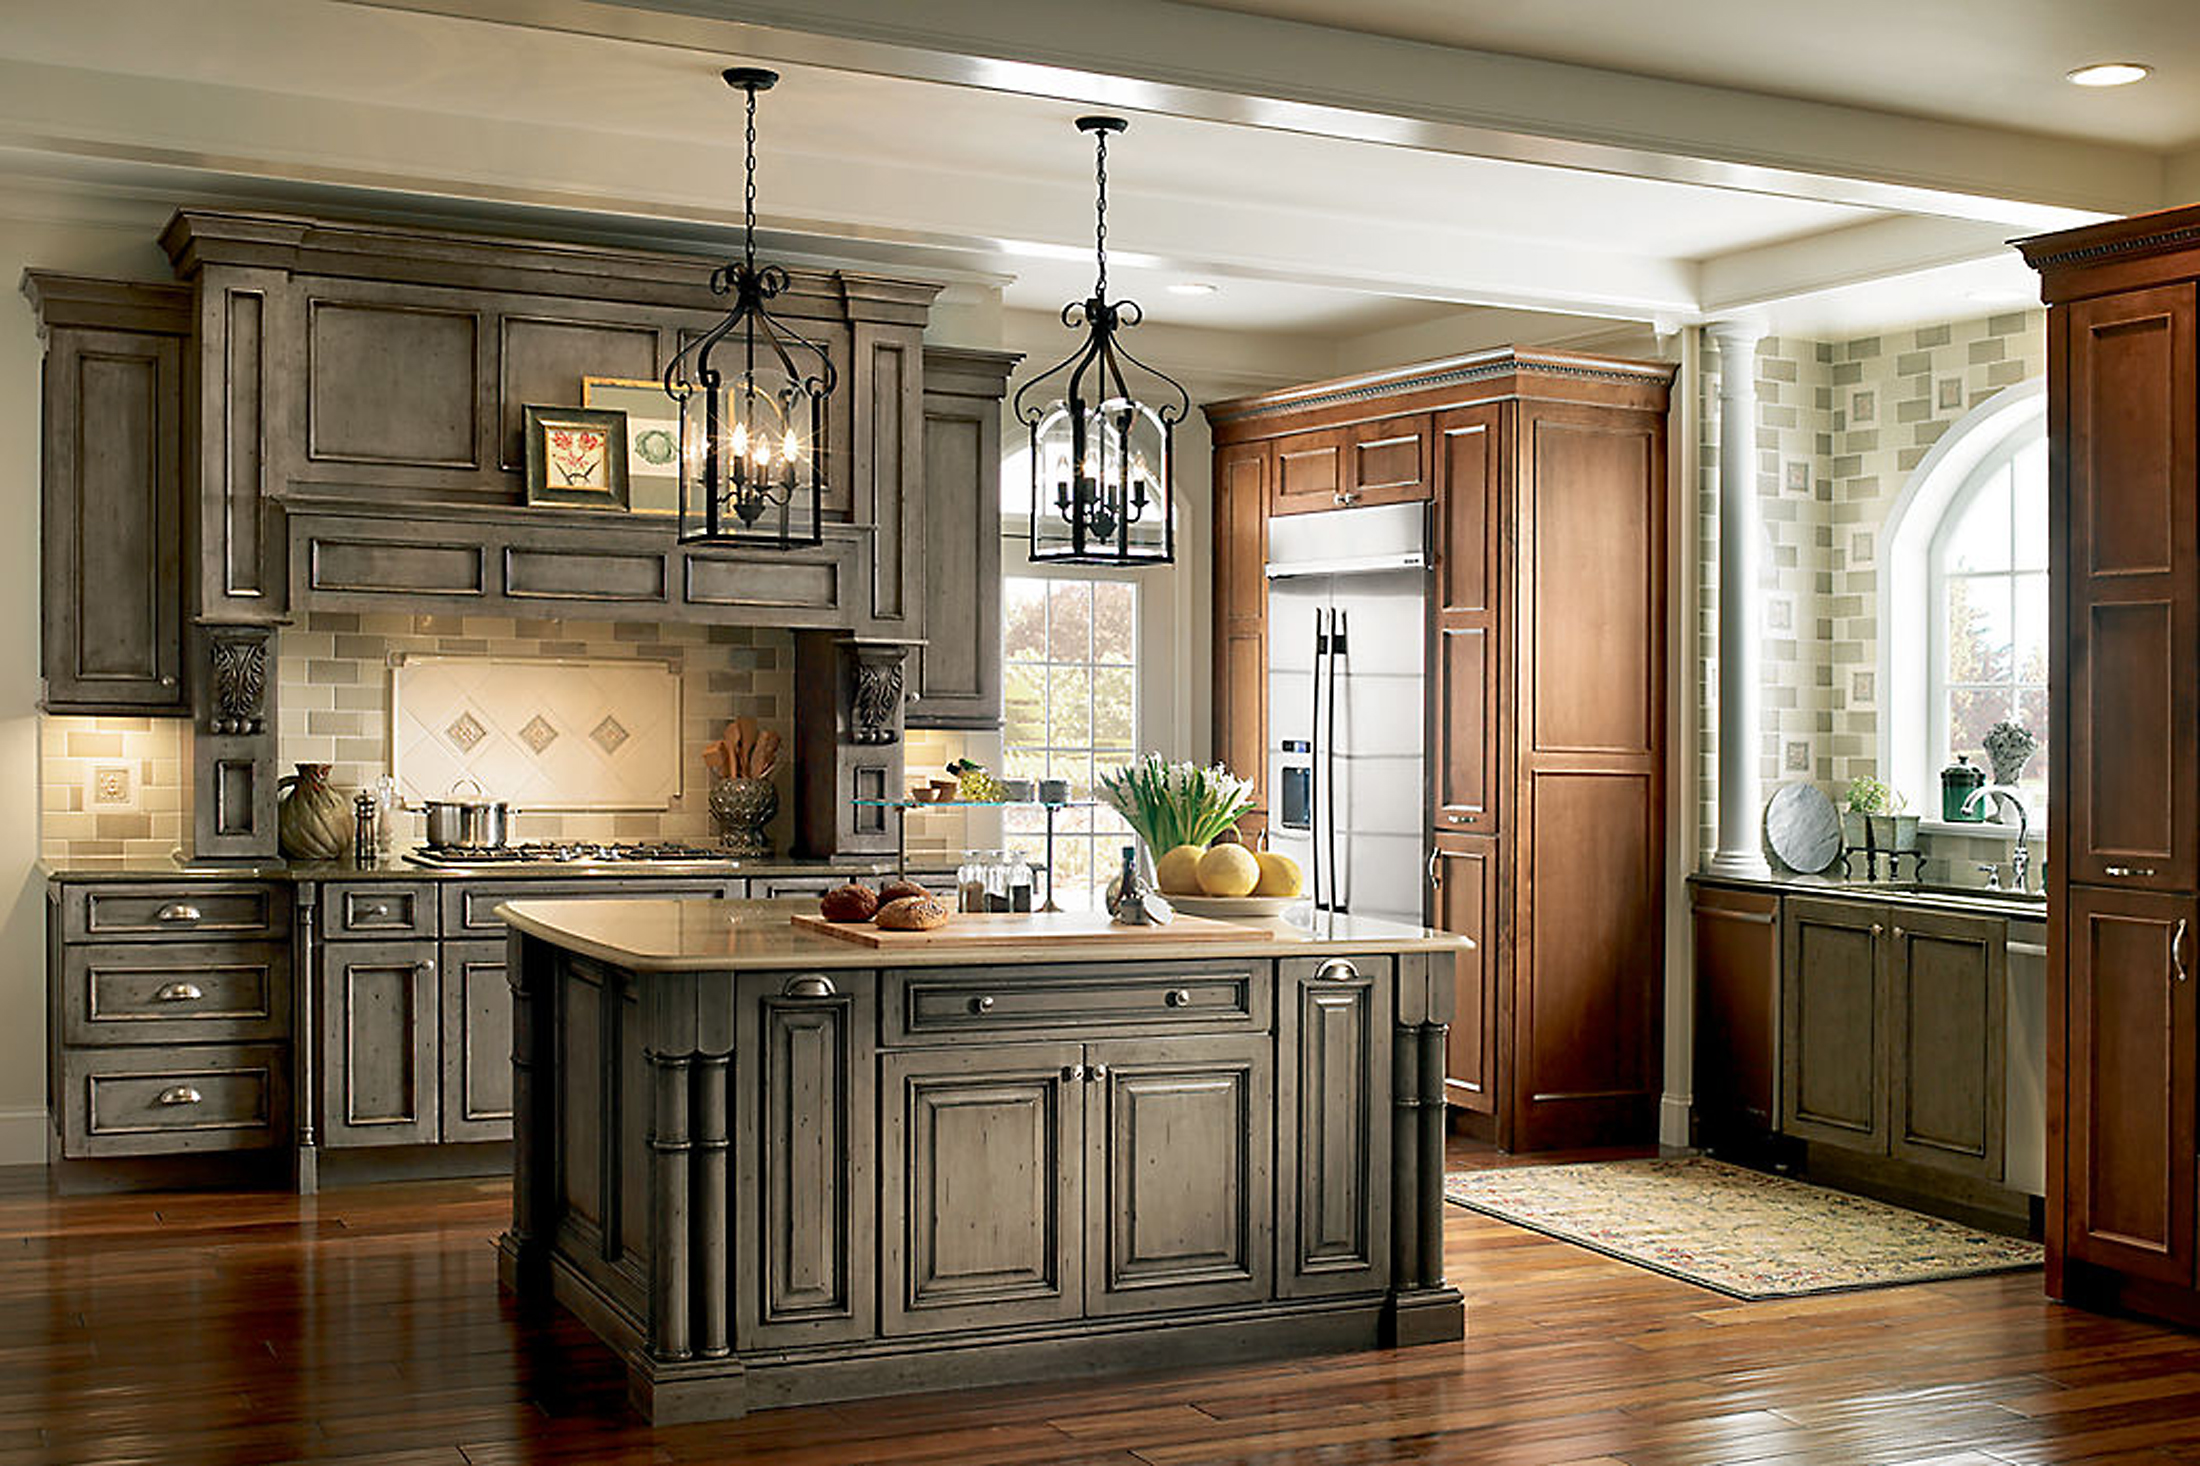 Column Colorful Cabinets Are Back In Style